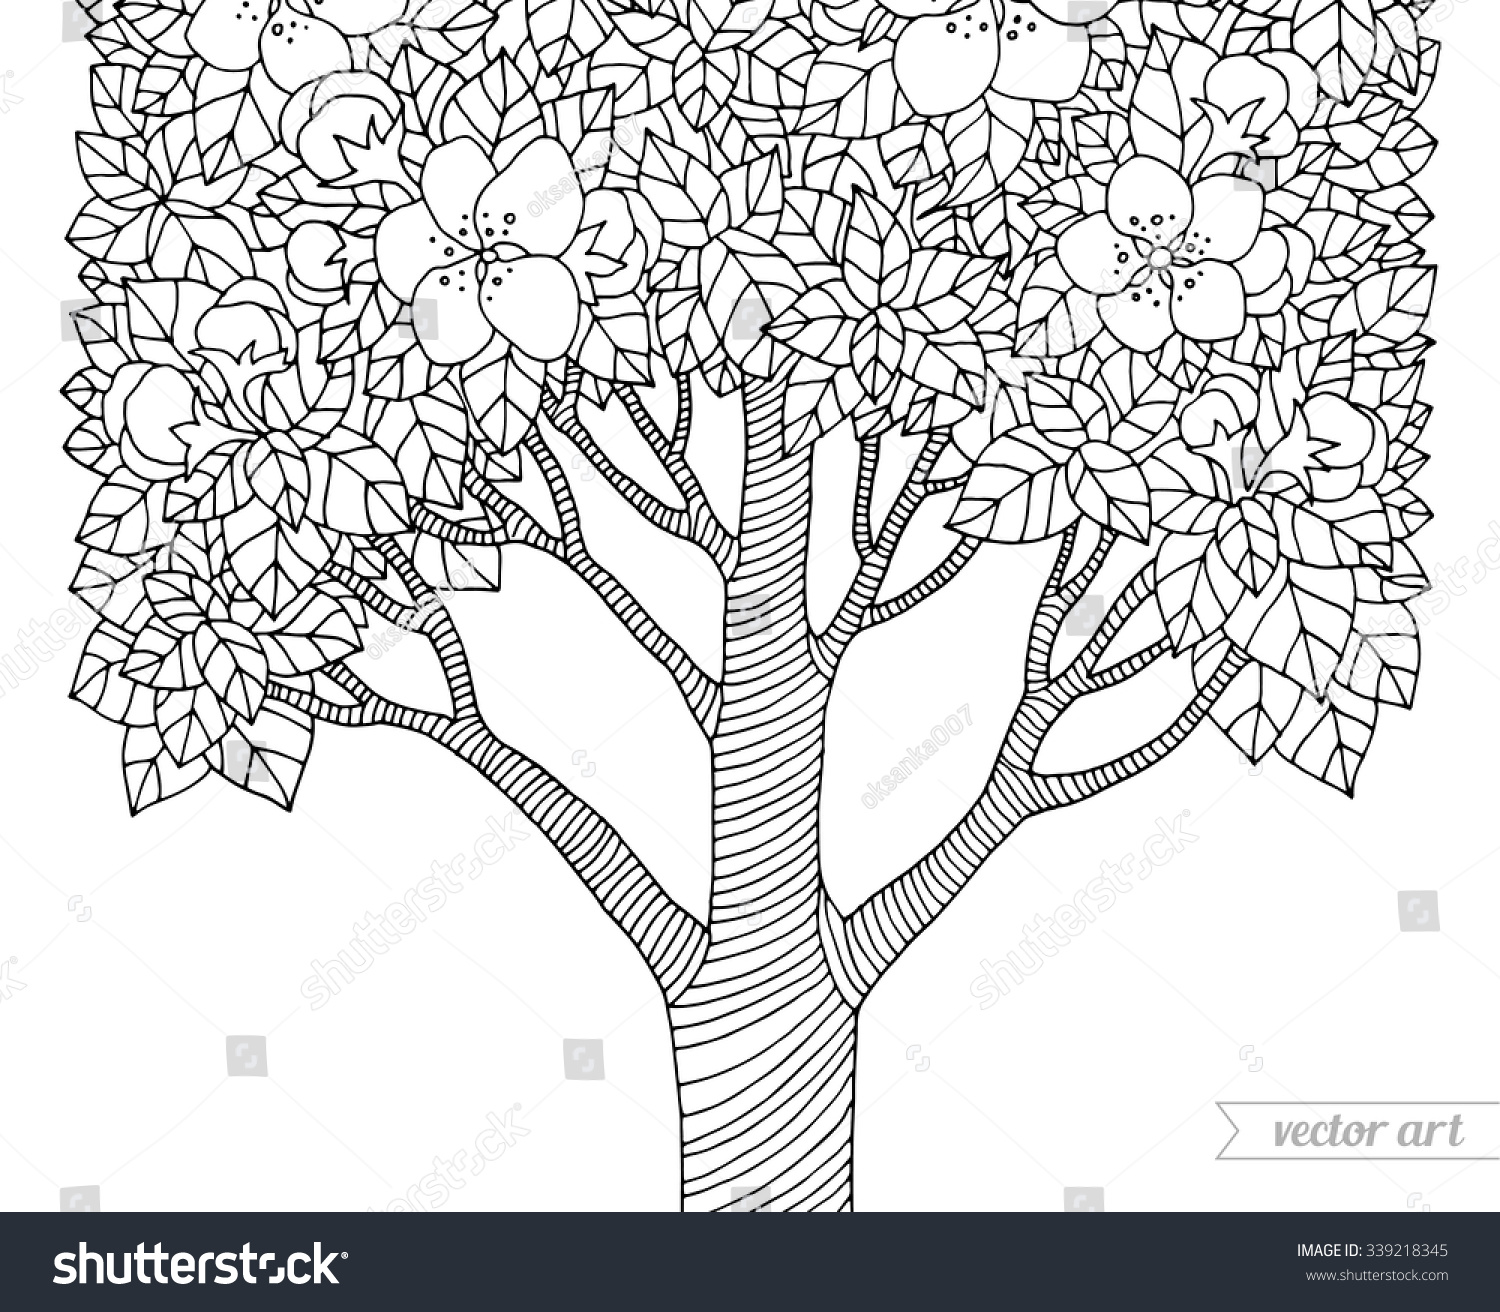 Coloring book page apple tree - Forest Apple Tree Flowers Vector Artwork Love Bohemia Concept For Invitation Card